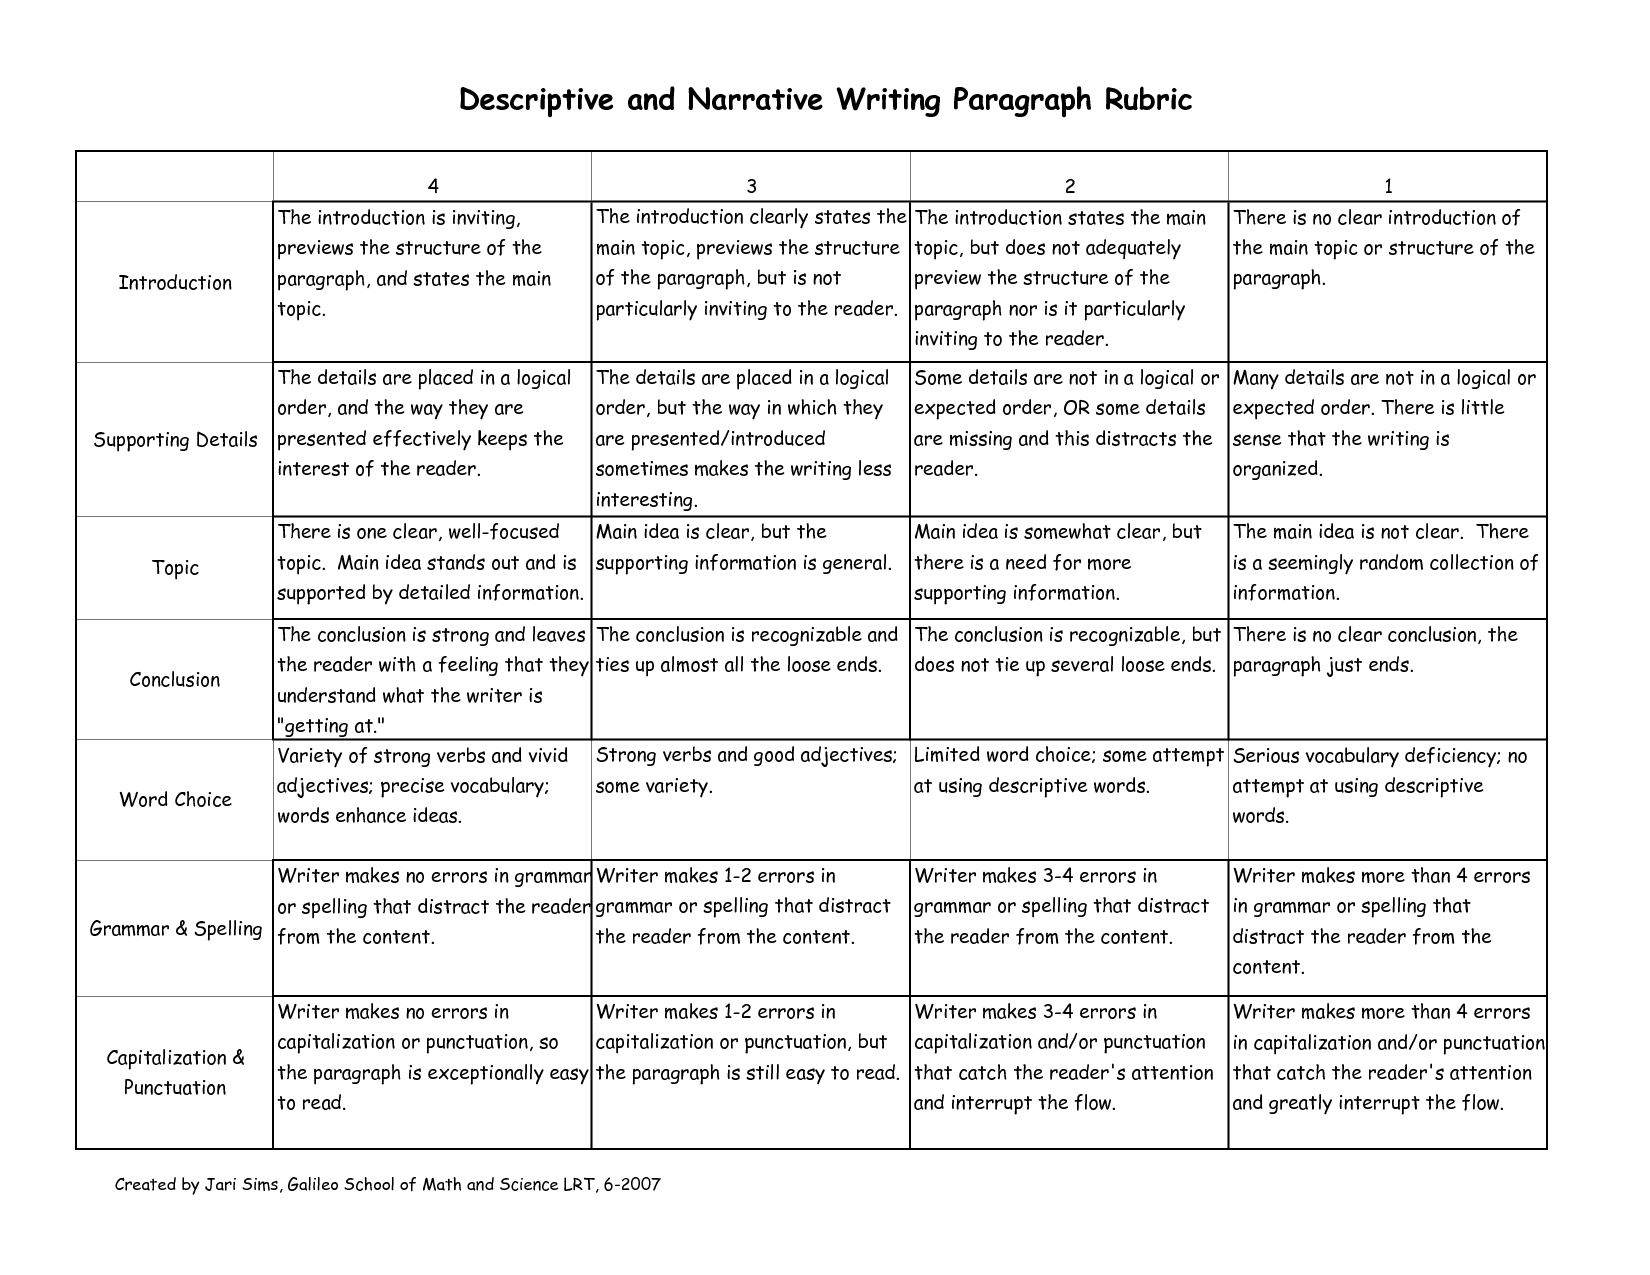 descriptive narrative writing rubric paragraph rubrics descriptive narrative writing rubric